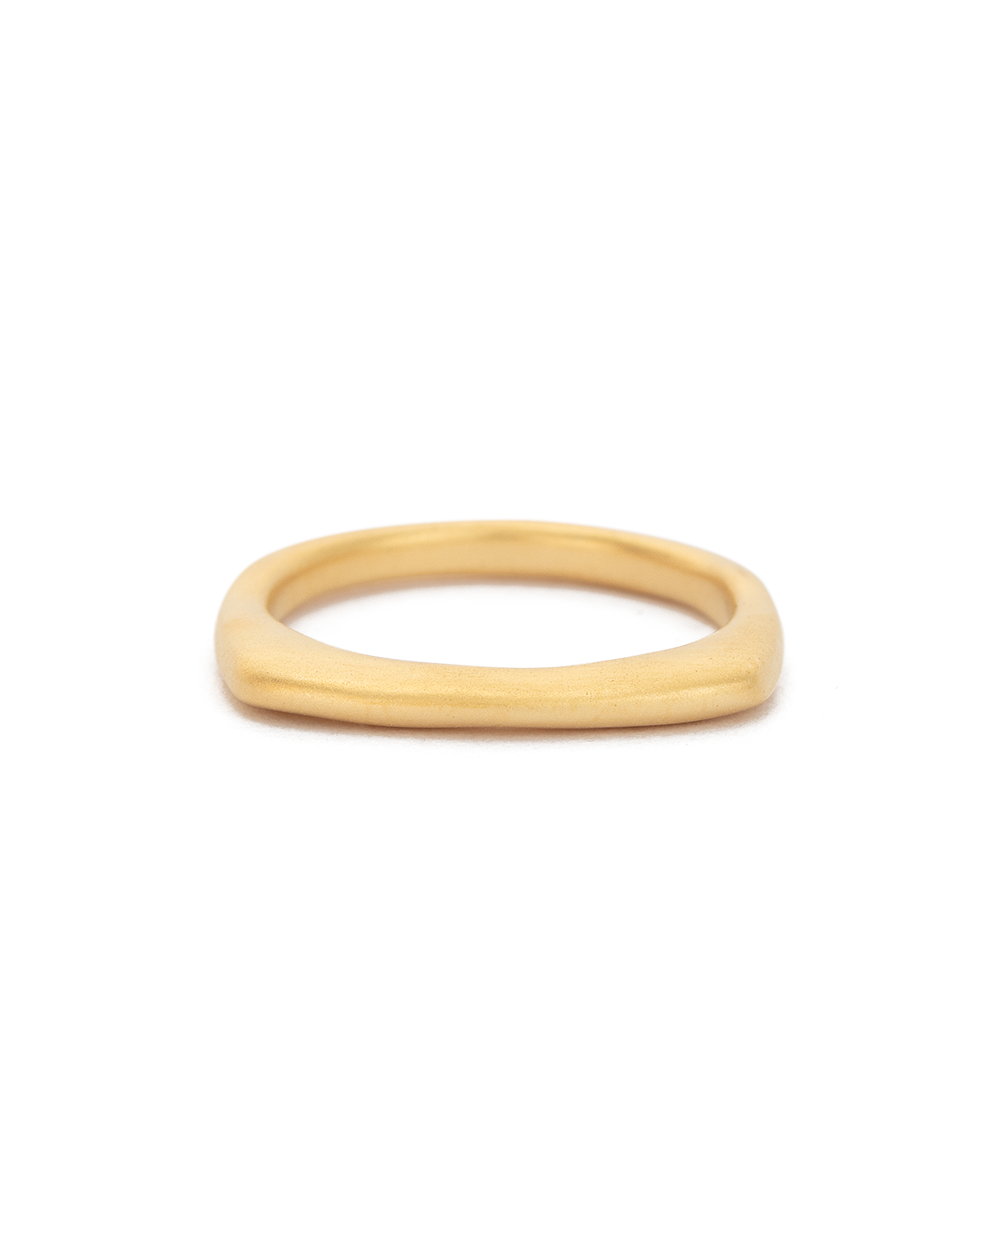 DAYBREAK STACKING RING (18K-GOLD-PLATED) - FRONT